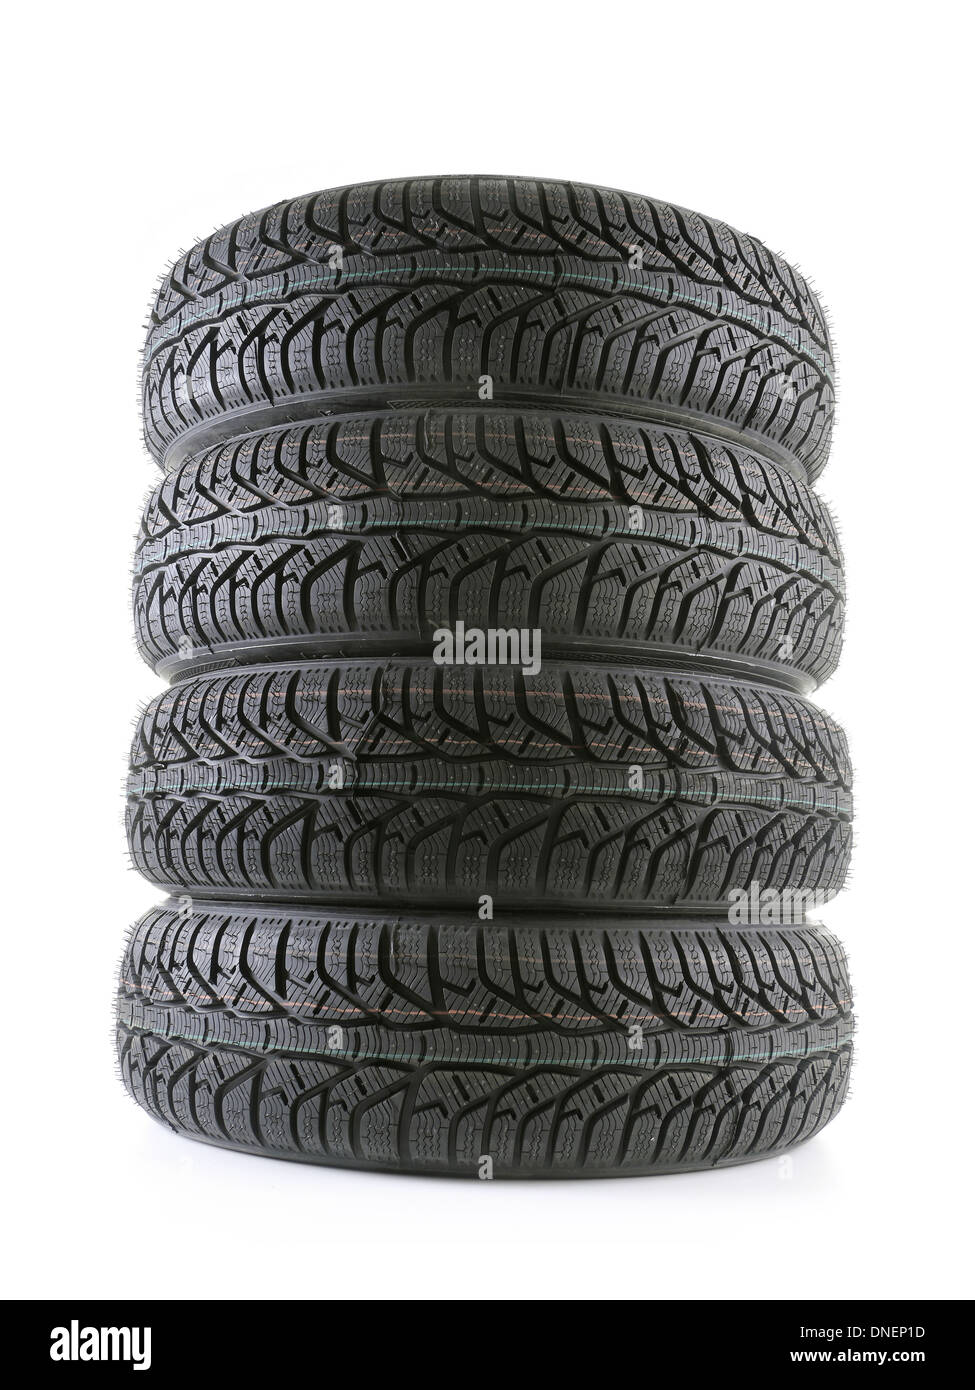 Pile of four winter car tyres shot on white - Stock Image